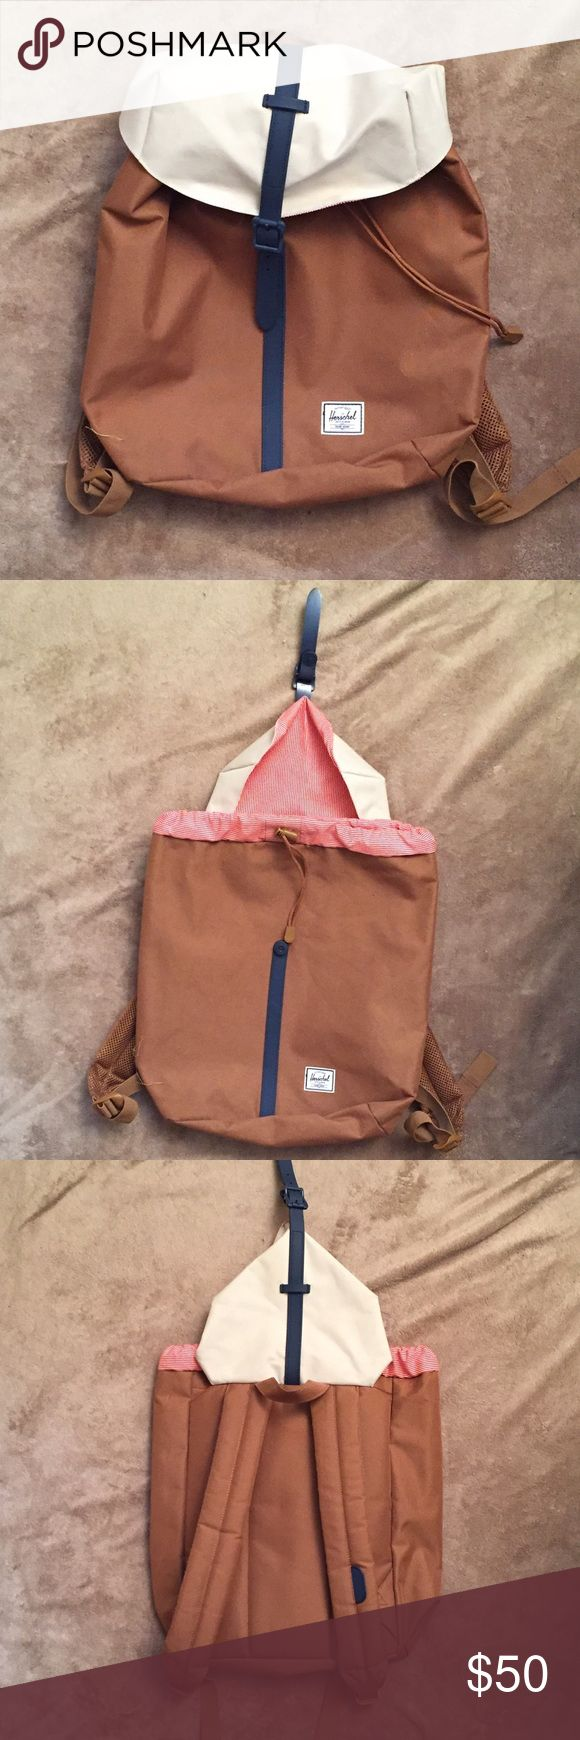 Herschel Backpack In good condition!                                                                              Has some flaws:                                                                             One small thread sticking out of one strap, white lid has a small discomfited spot, inside has markings from pens                                                                                                        Perfect for a weekend getaway! Make an offer! Herschel Supply Company…